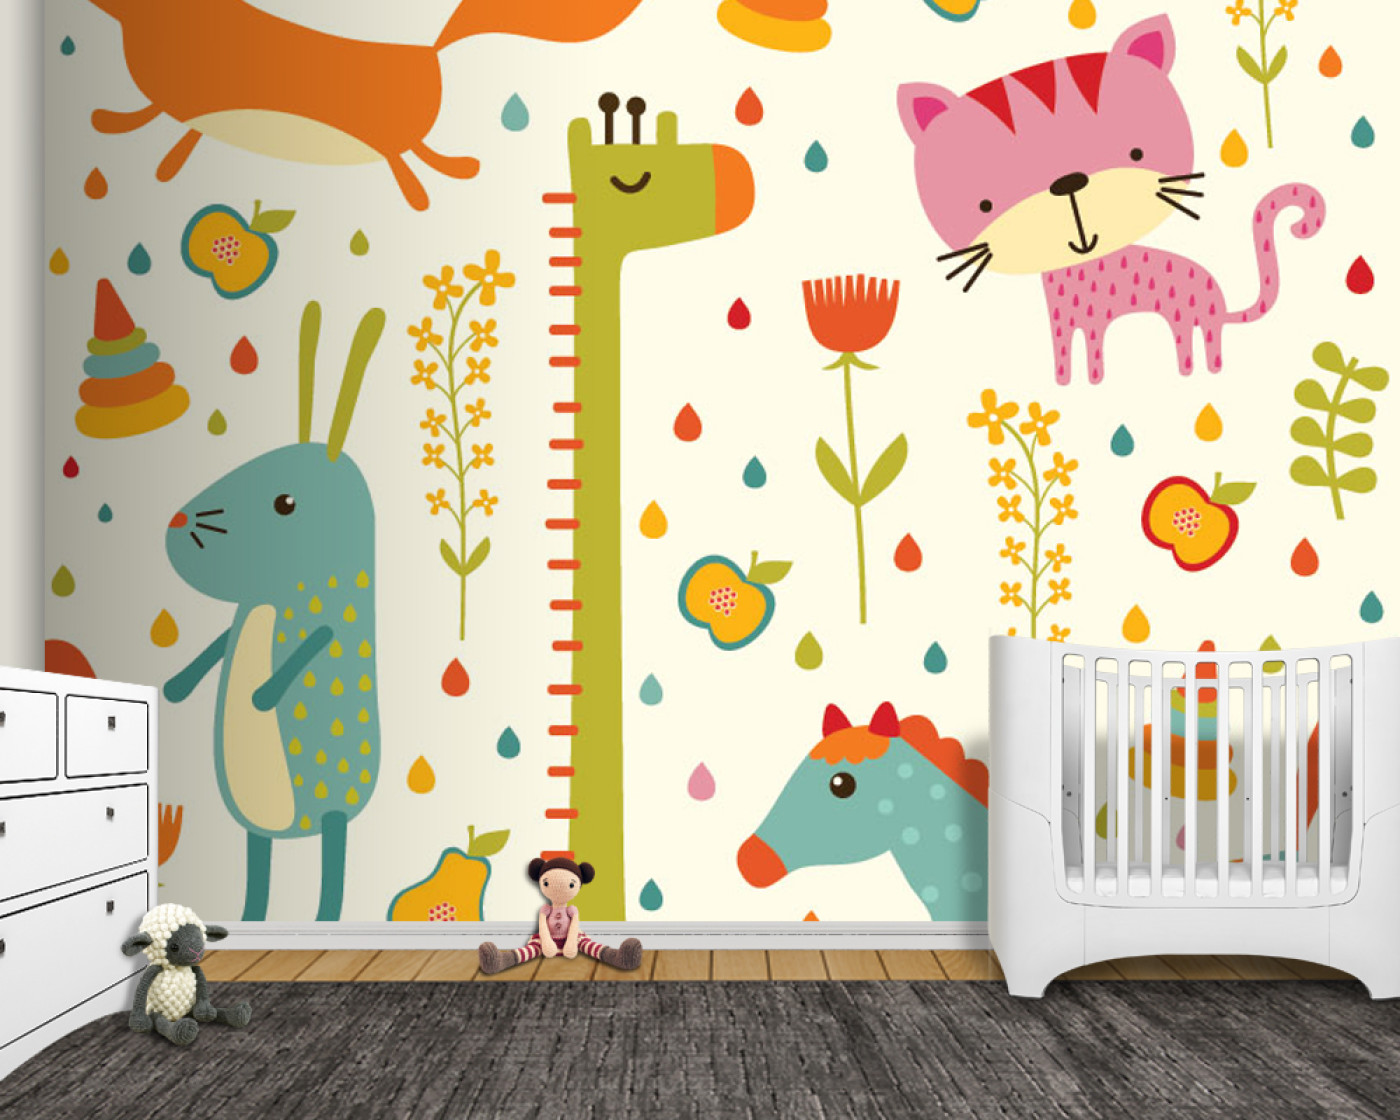 Cute giraffe bunny horse and cat drawings baby wall mural